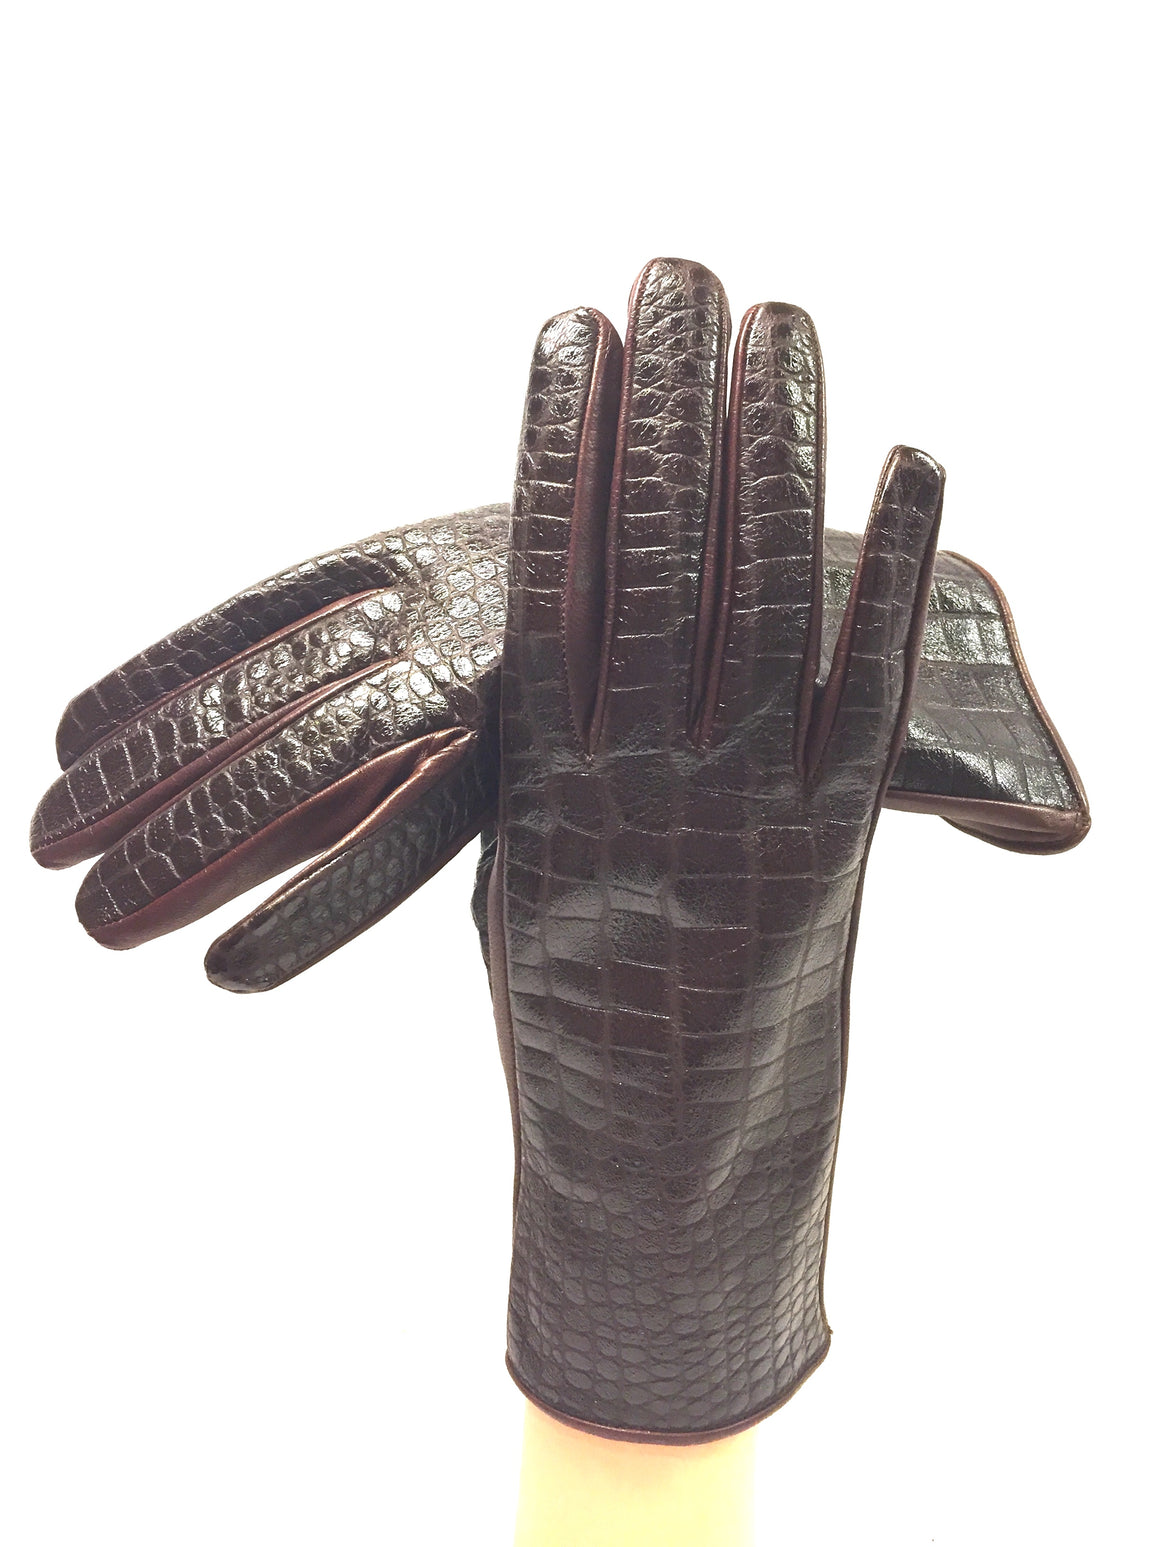 BERGDORF GOODMAN Brown Leather Alligator Patterned Top Silk-Lined Wrist Gloves Sz6.5